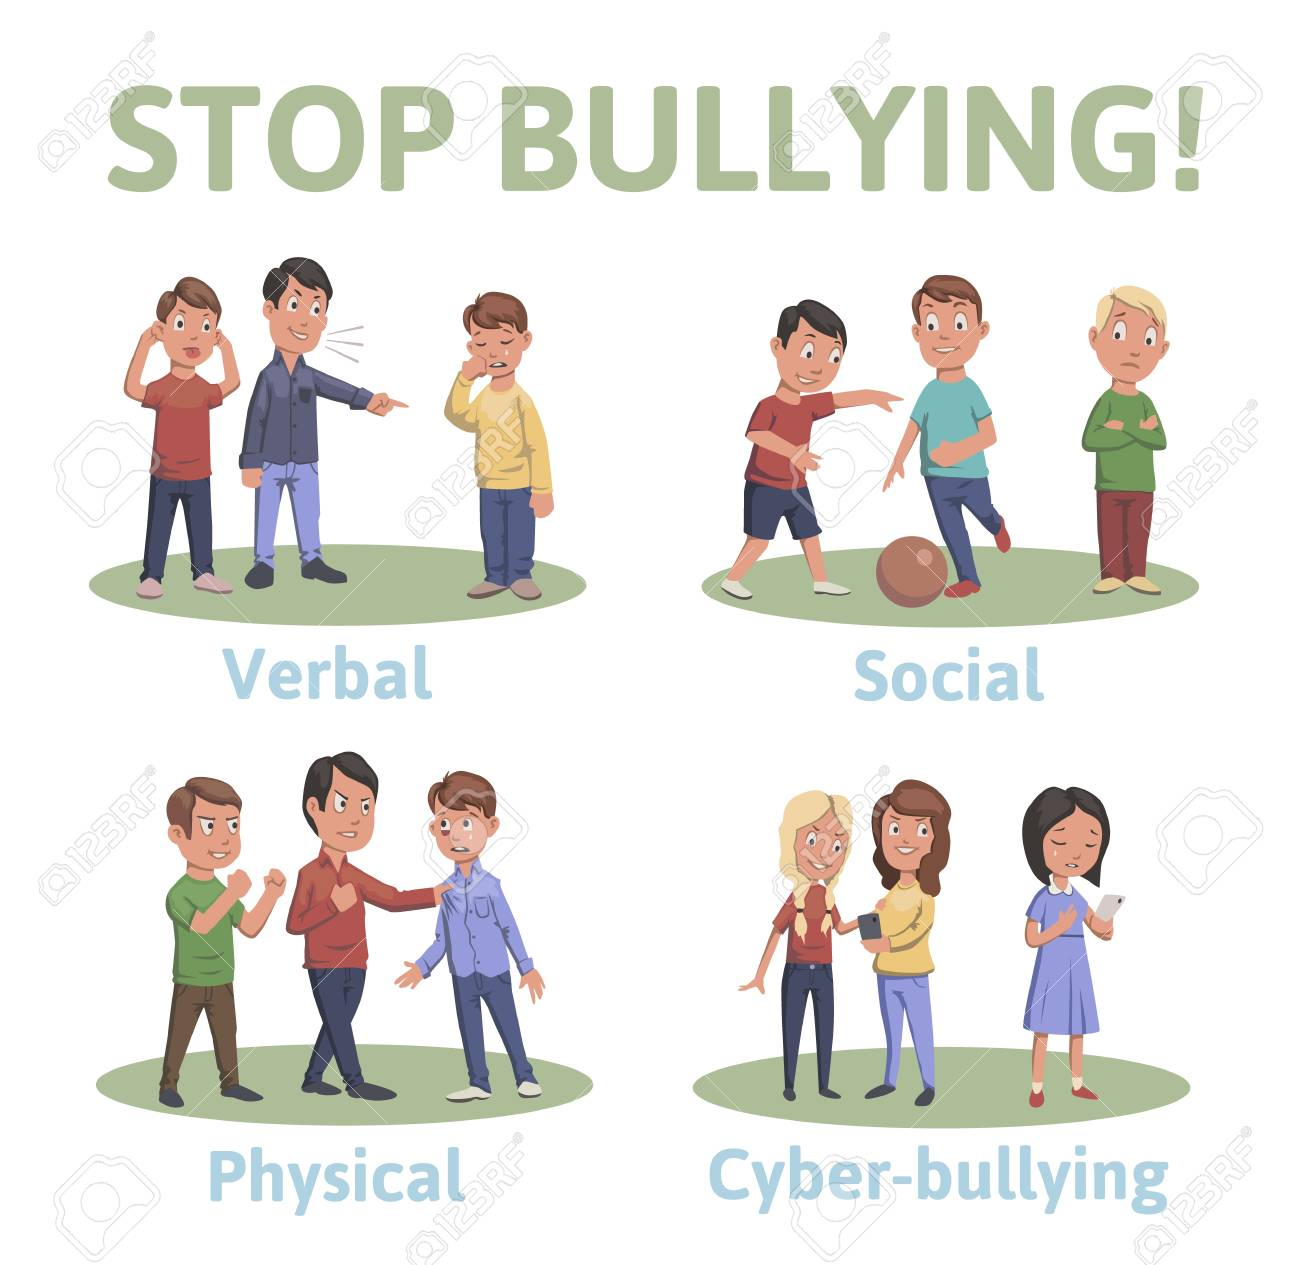 Stop bullying in the school, 4 types of bullying, verbal, social, physical, cyber bullying. Cartoon vector illustration, isolated on white background. - 98431334